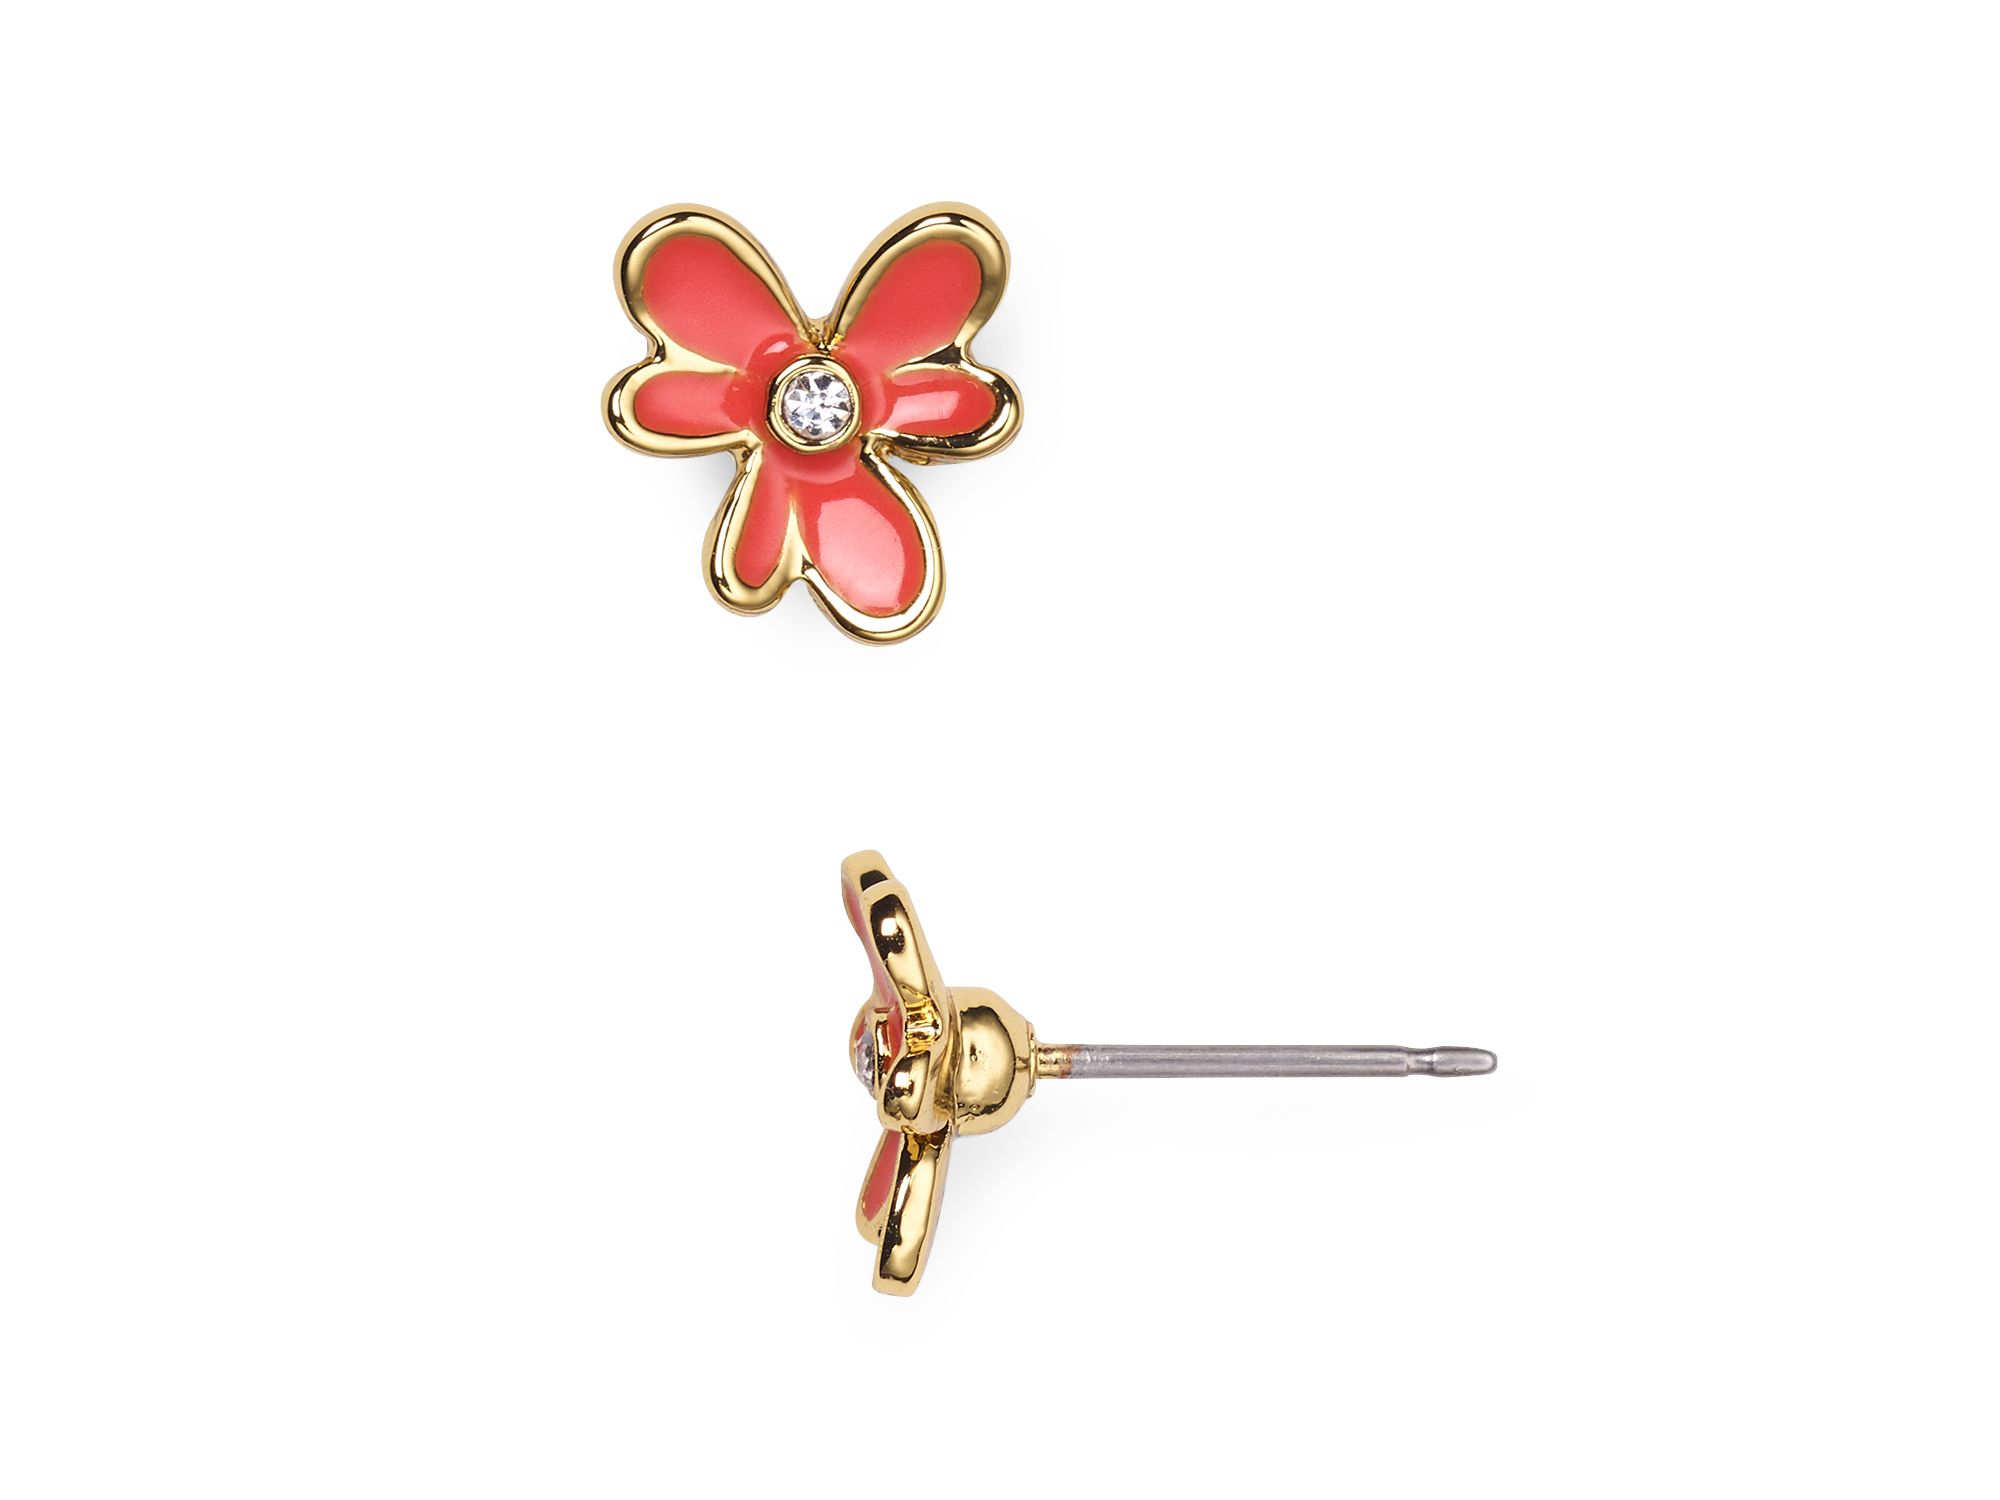 Lyst - Kate spade new york Pansy Blossoms Stud Earrings in Orange